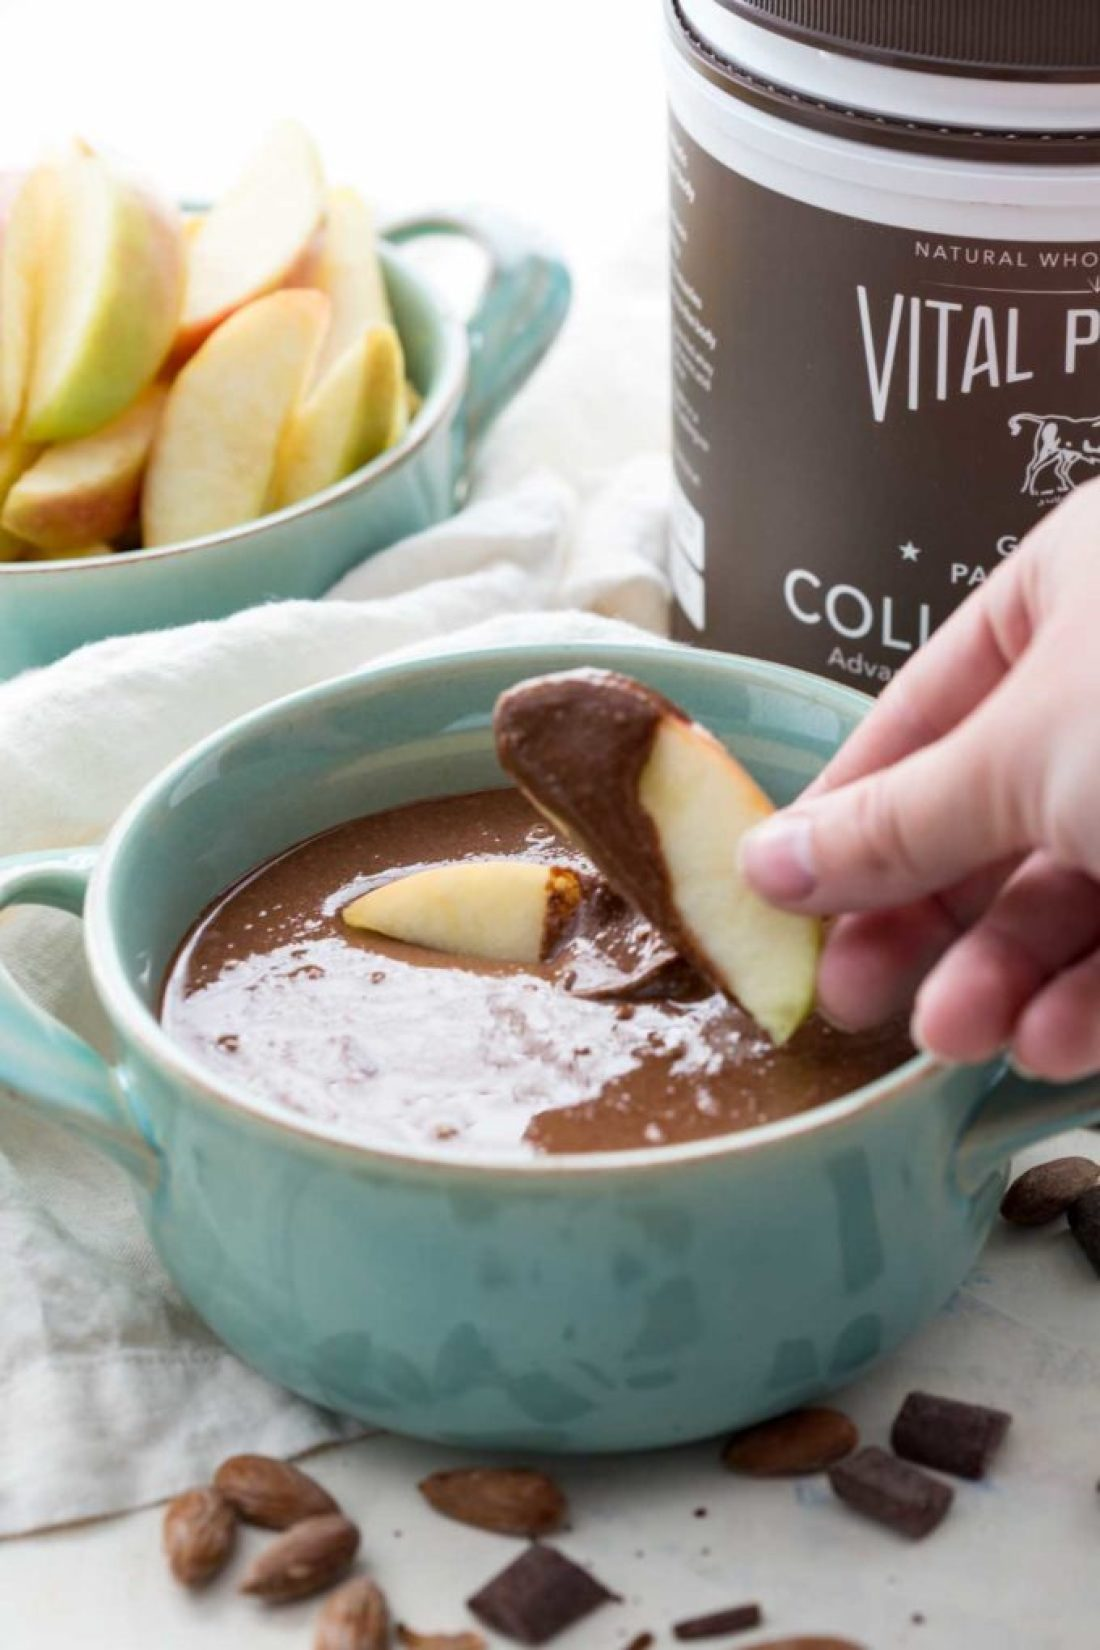 Almond Butter Recipe: Creamy, easy, and oh so delicious almond butter that whips up in minutes, and is chocolate-y nut butter dreams are made of.